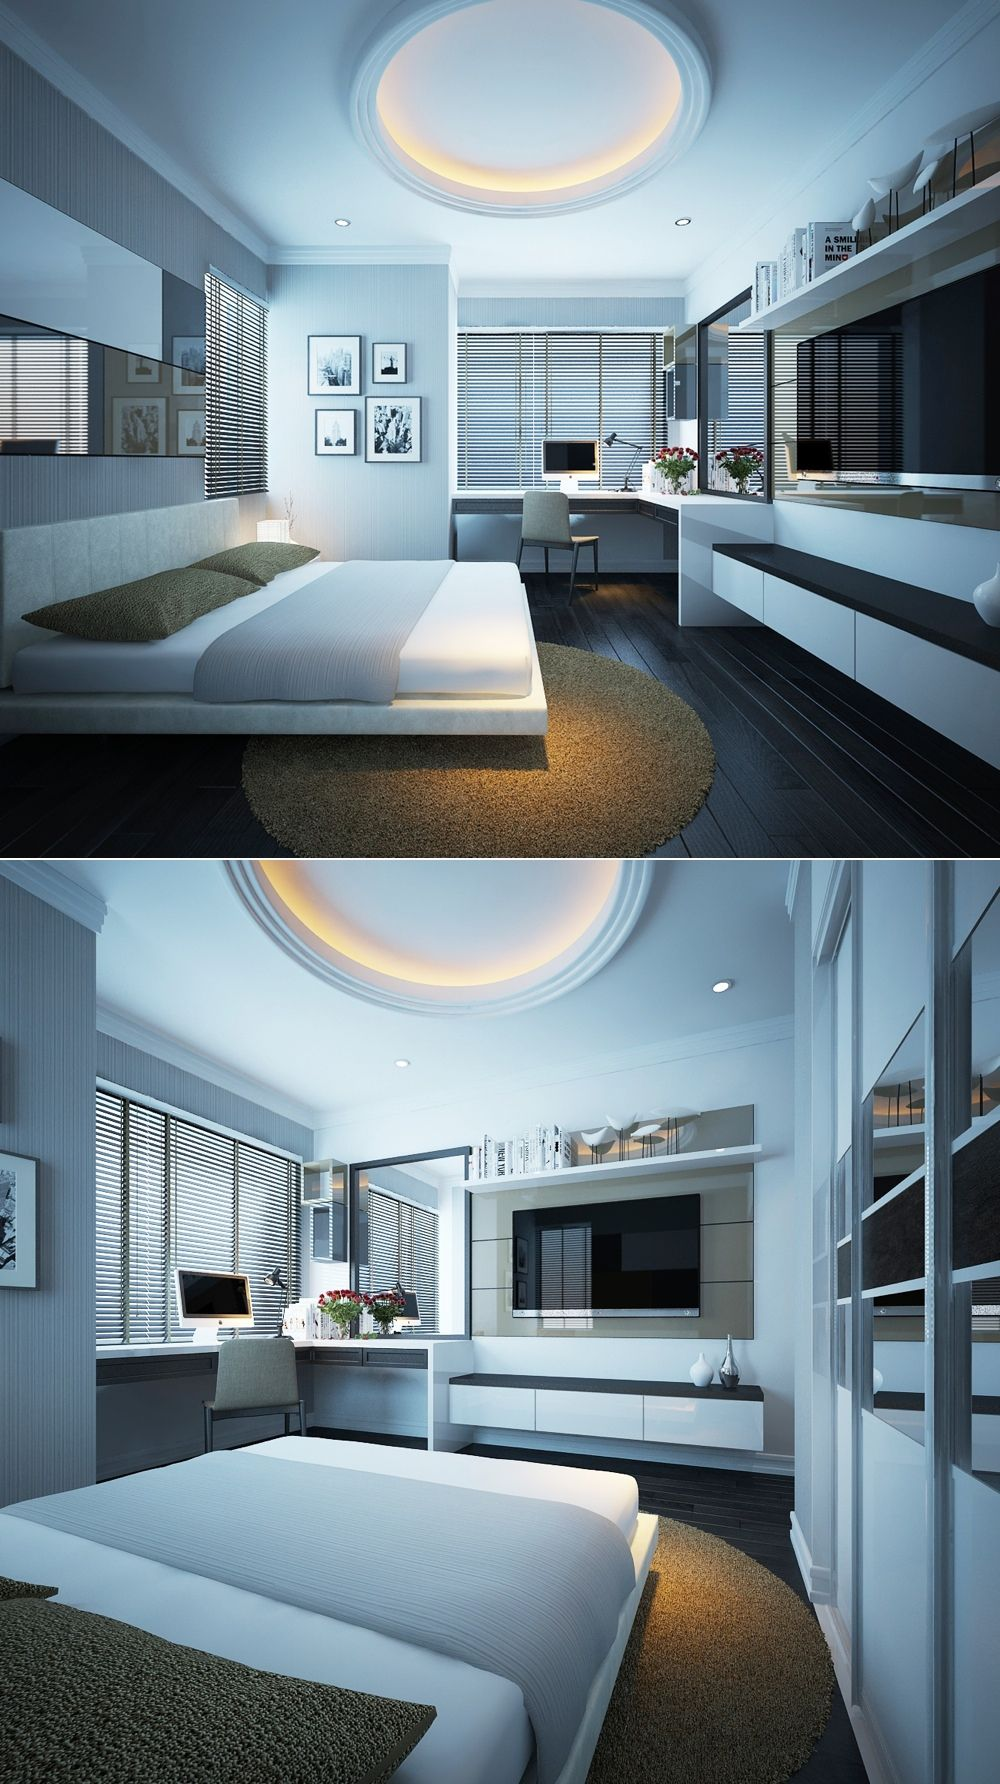 Ultra Modern Luxury Bedroom Set Design Ideas With Elegant ...